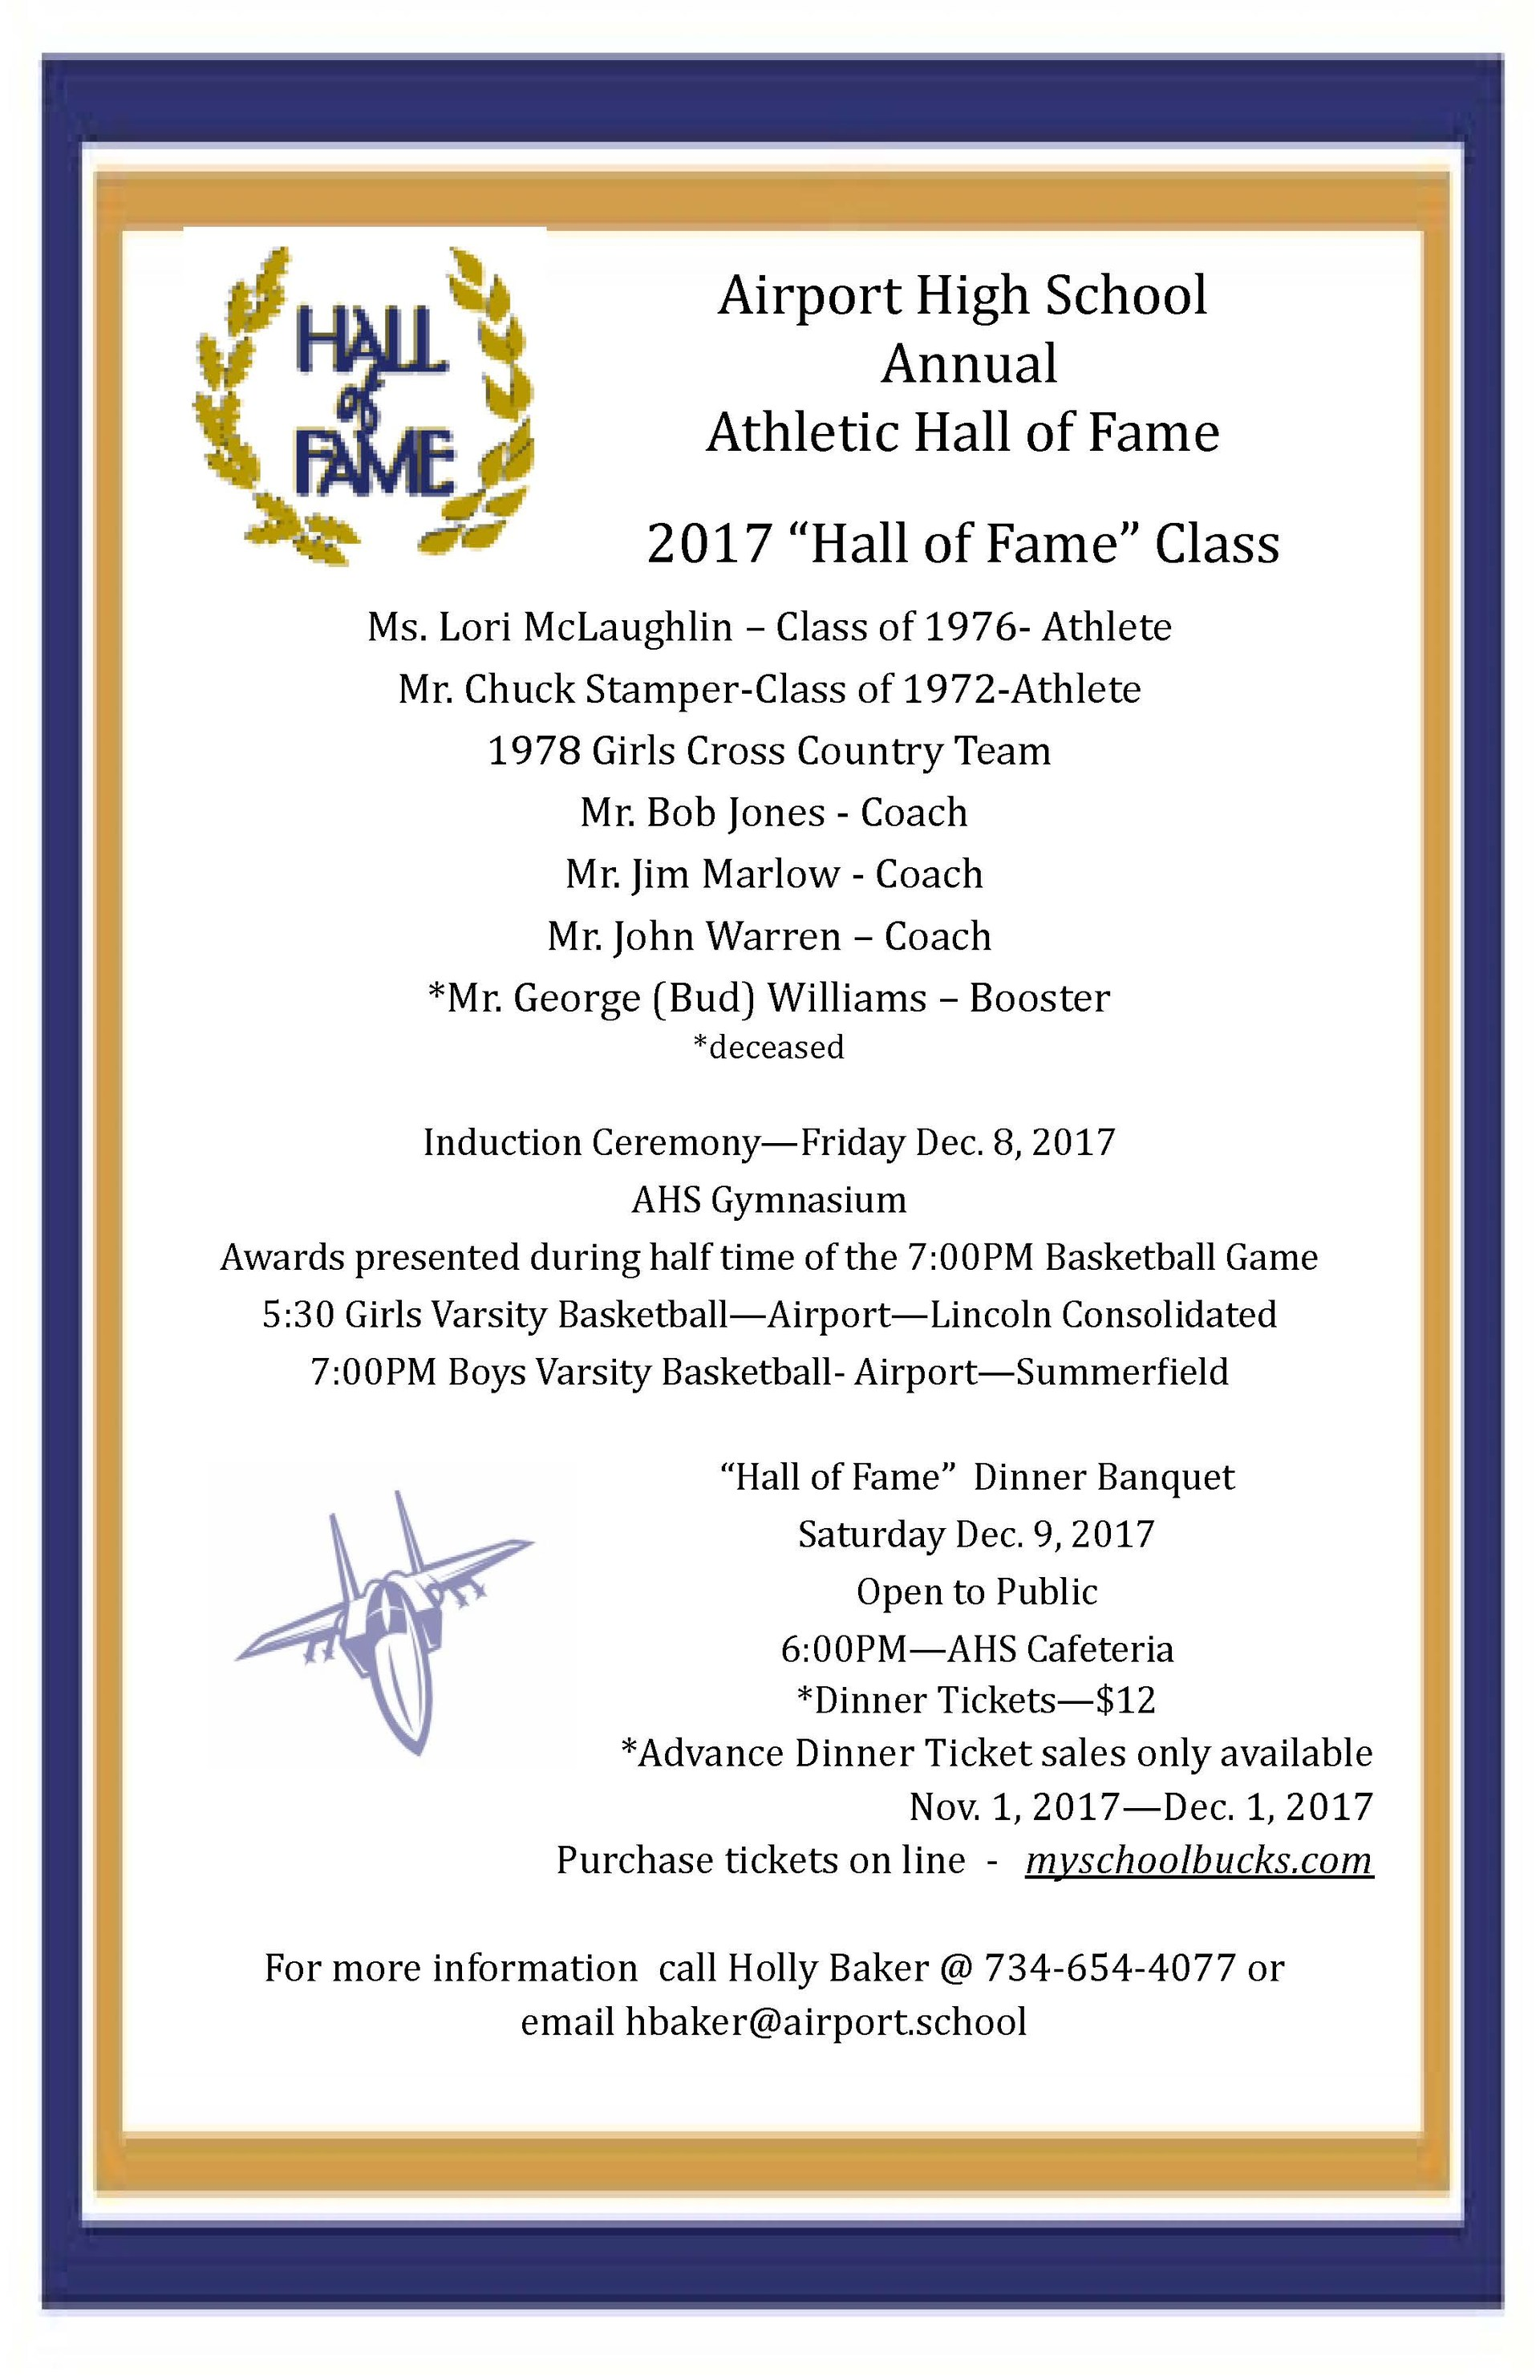 Hall of Fame Class 2017